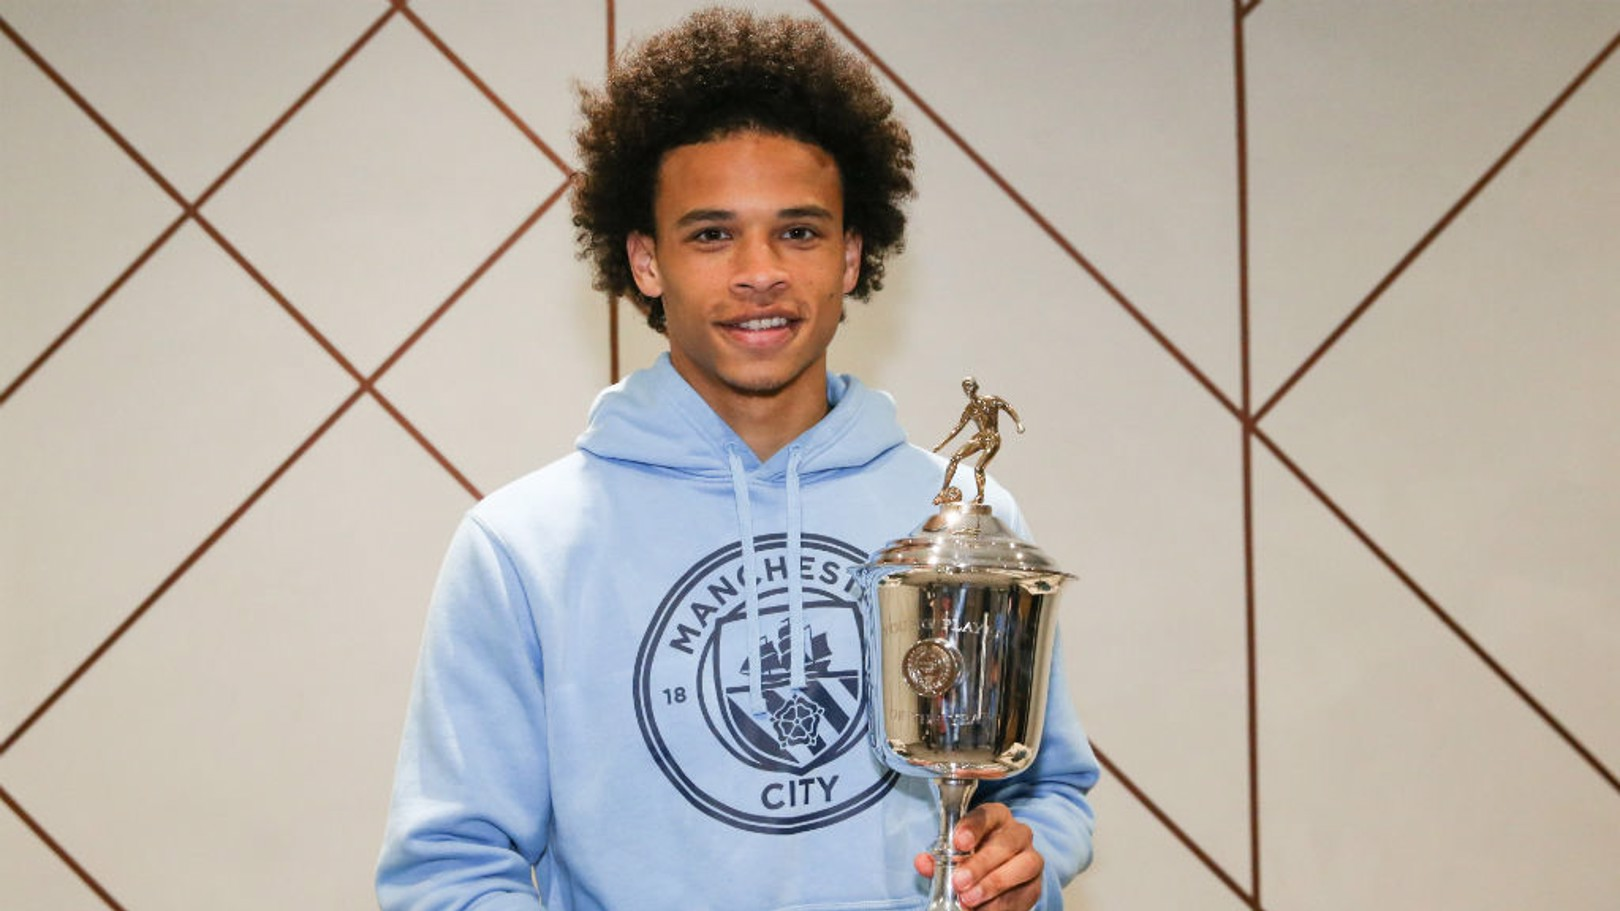 Leroy Sane named PFA Young Player of the Year